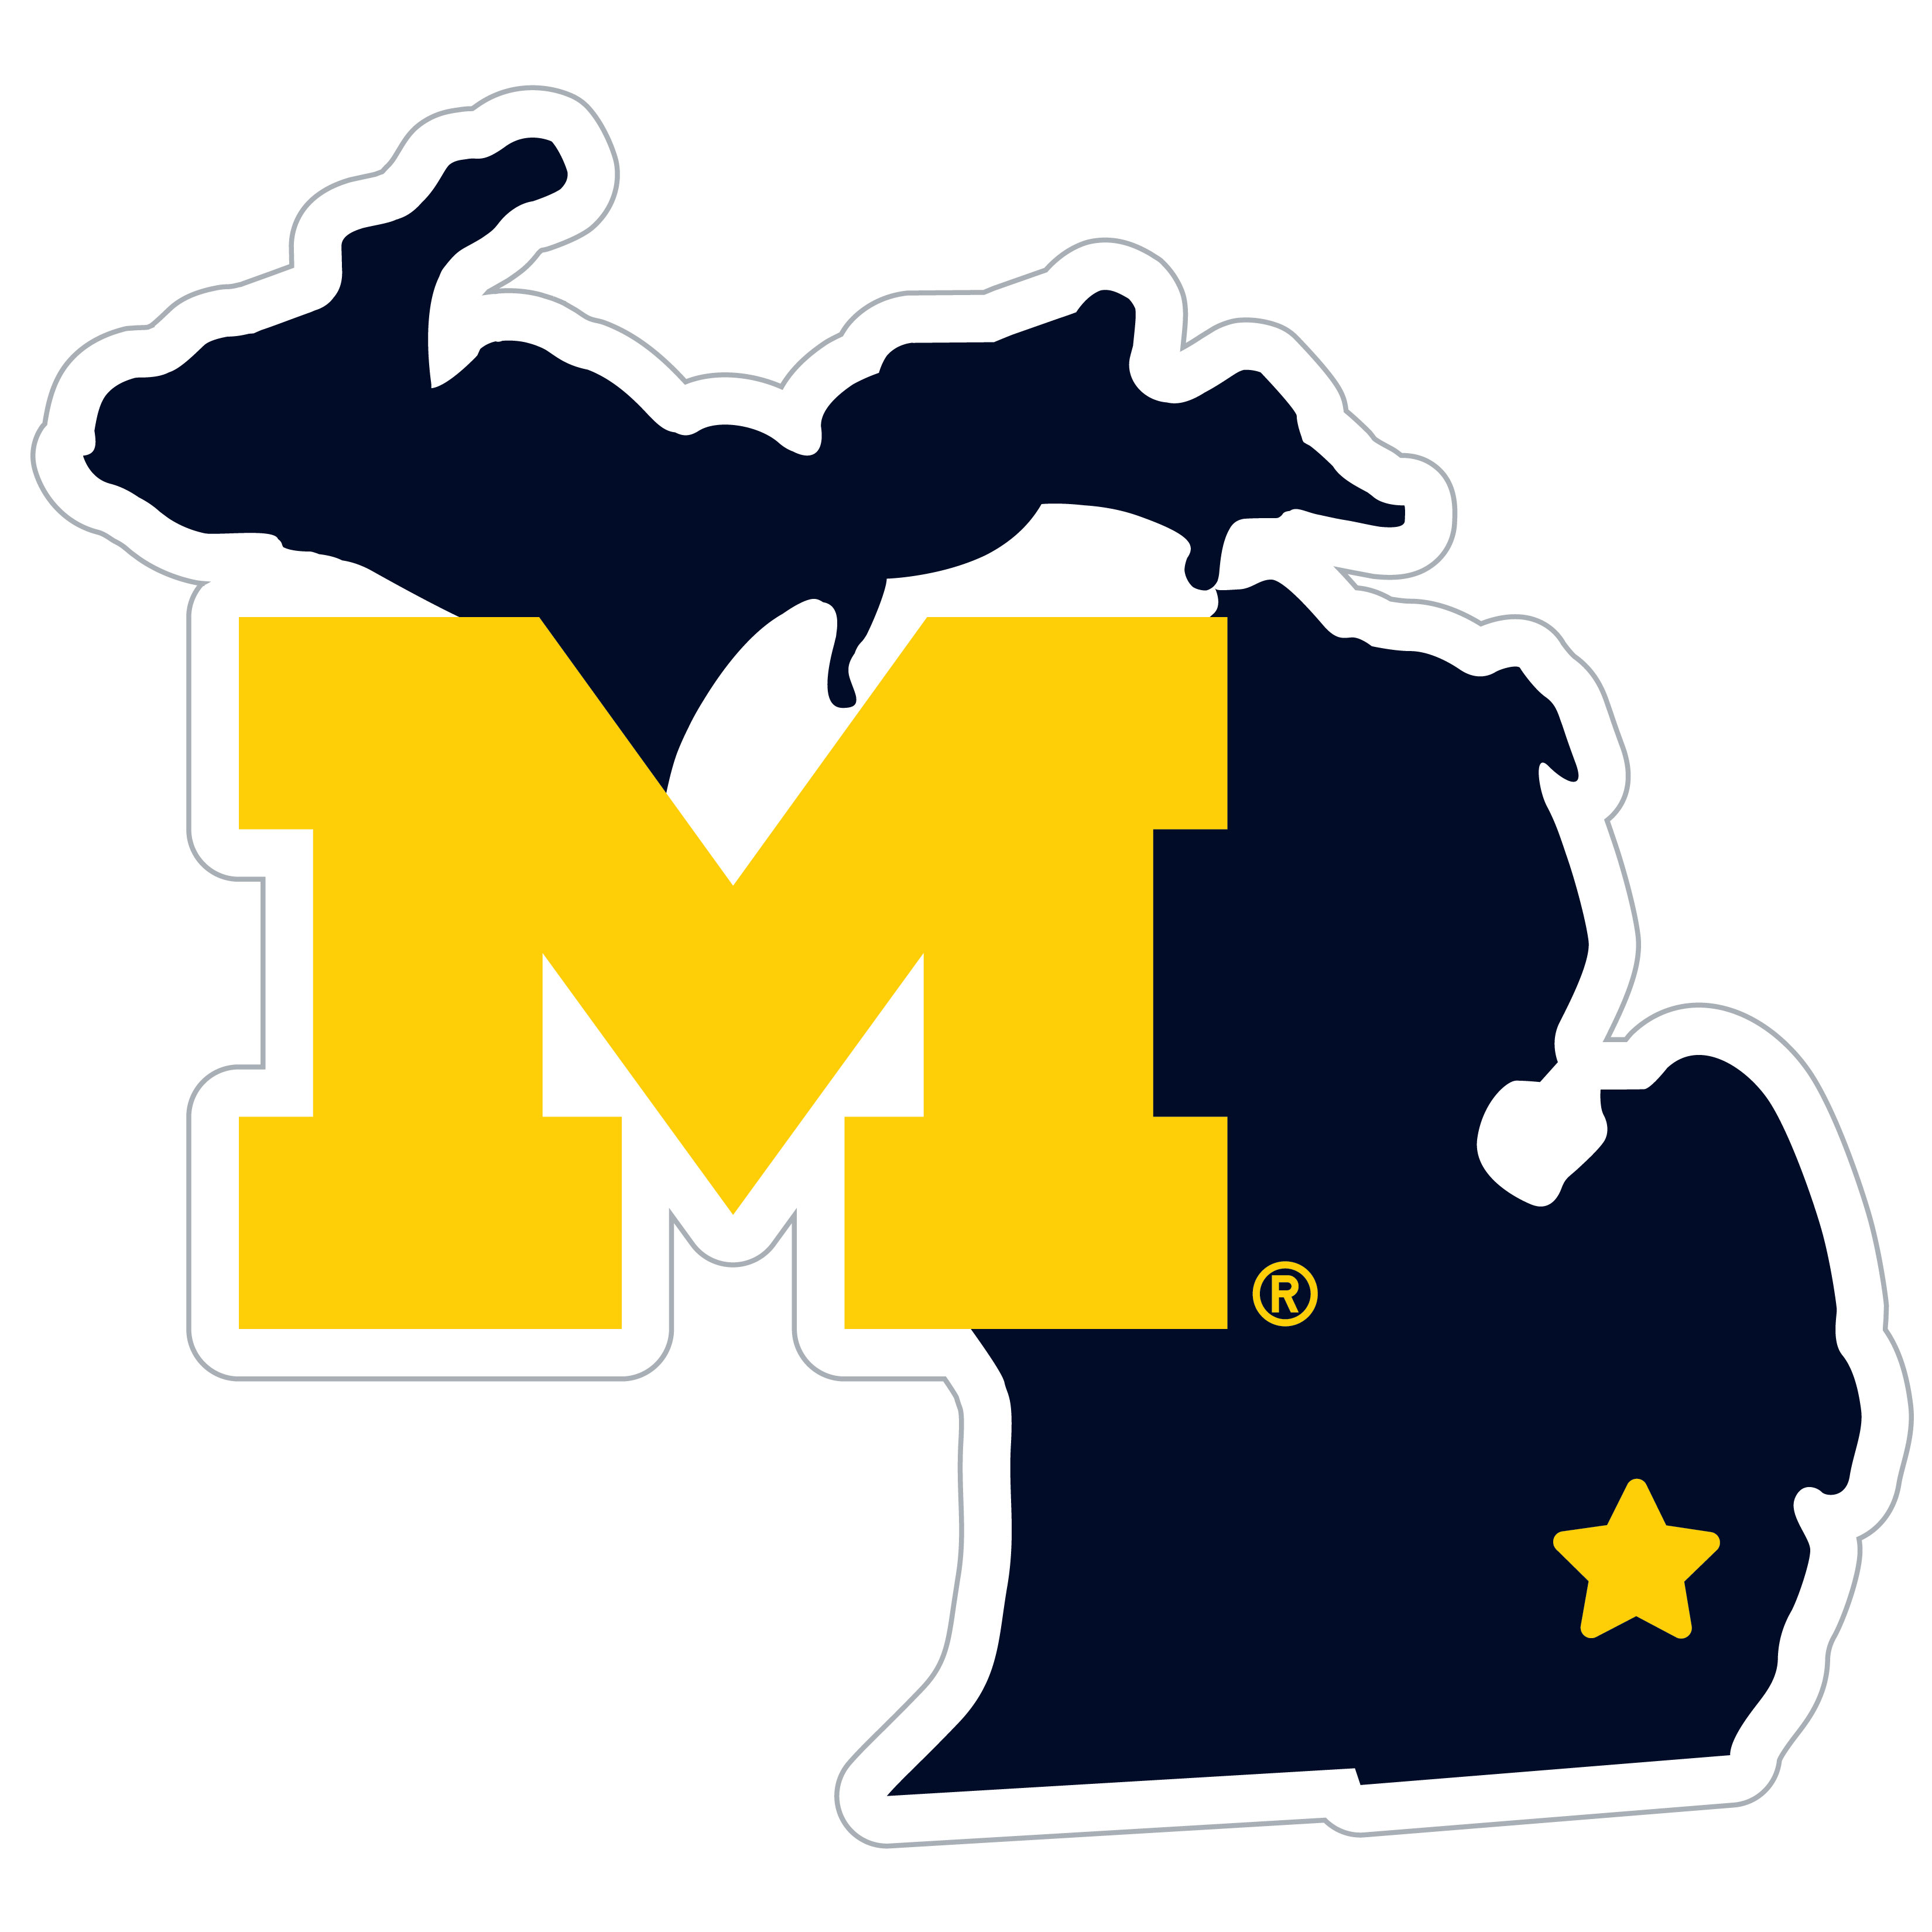 Michigan Wolverines Home State 11 Inch Magnet - Whether you are caravaning to the game or having a tailgate party make sure you car is wearing its fan gear with our extra large, 11 inch Michigan Wolverines home state magnets. These striking magnets can be easily placed on for game day and removed without he residue left by decals. The design features a bright state outline with the location of the team highlighted with a football and a large team logo.